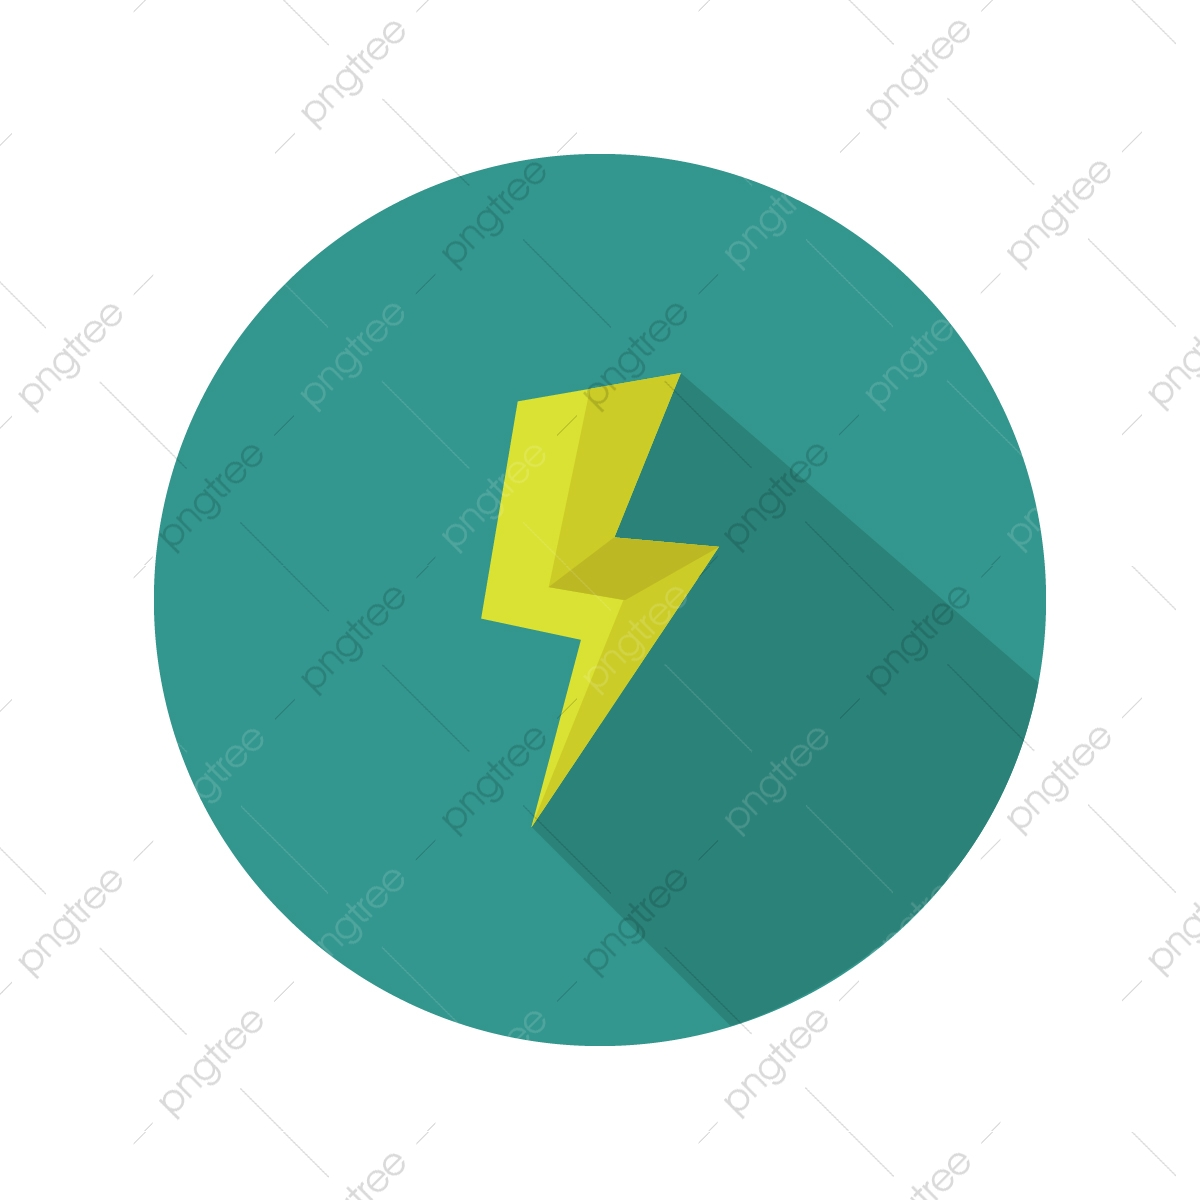 Bolt Png Images Vector And Psd Files Free Download On Pngtree